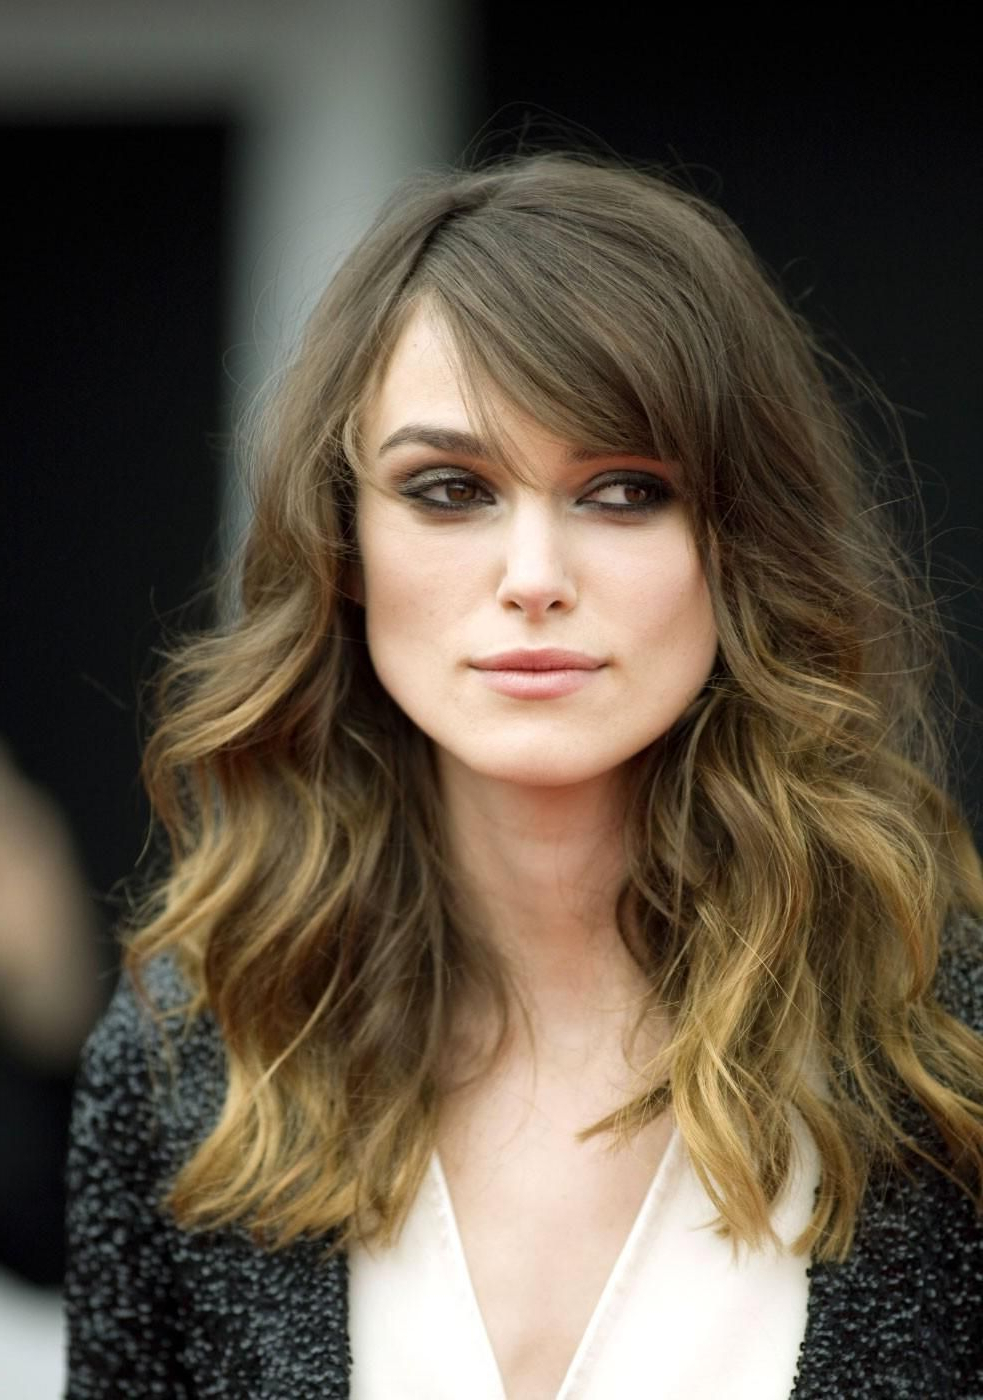 Keira Knightley Hairstyles Hair (View 11 of 20)